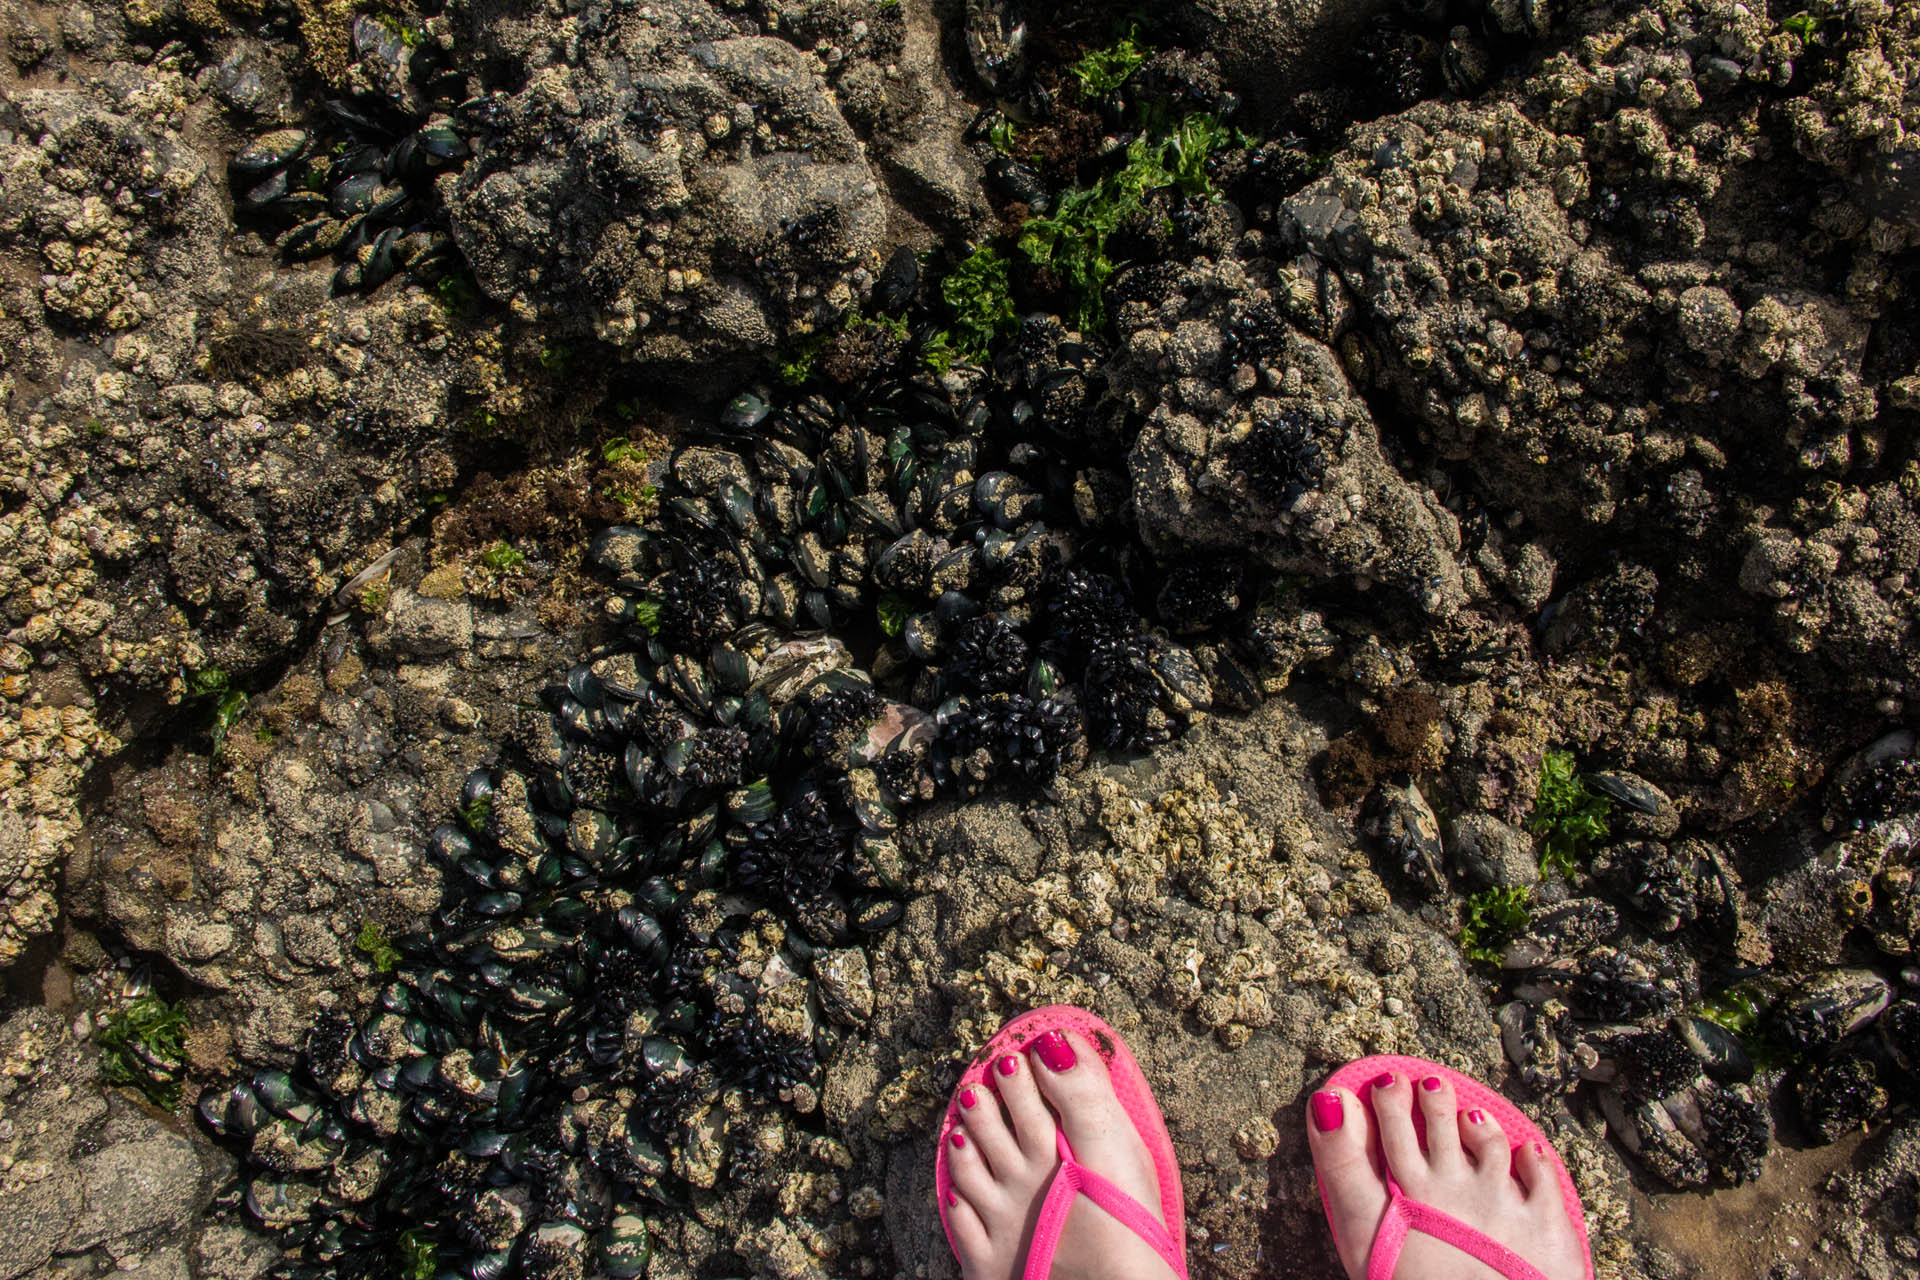 hot pink flip flops explore barnacles and tide pools